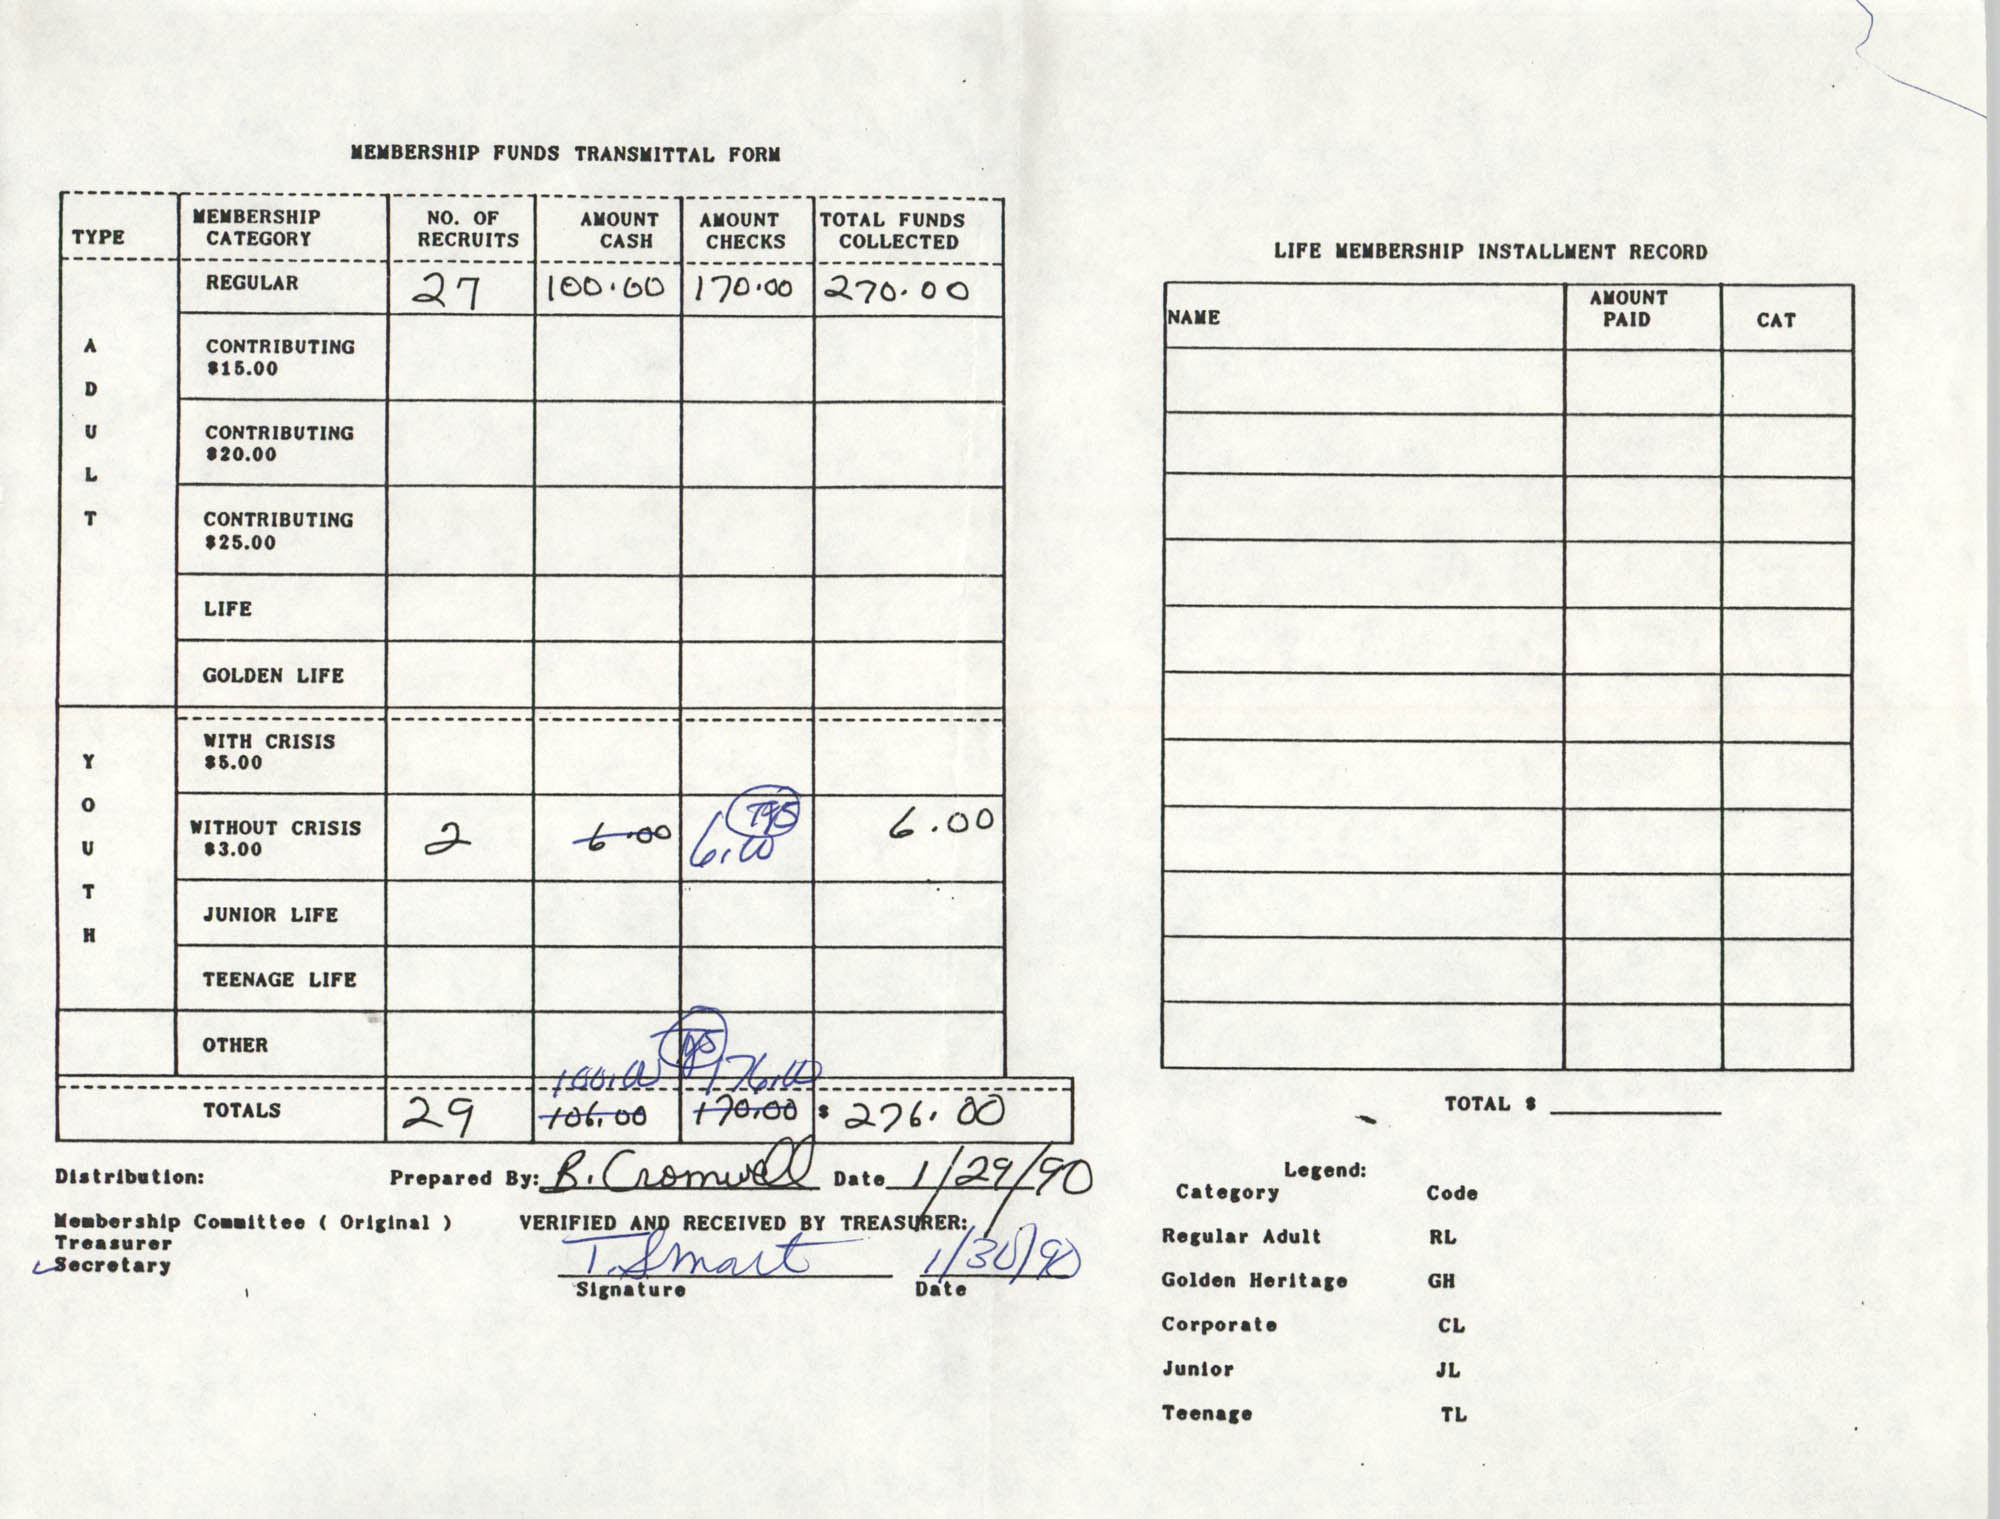 Charleston Branch of the NAACP Funds Transmittal Forms, January 1990, Page 8